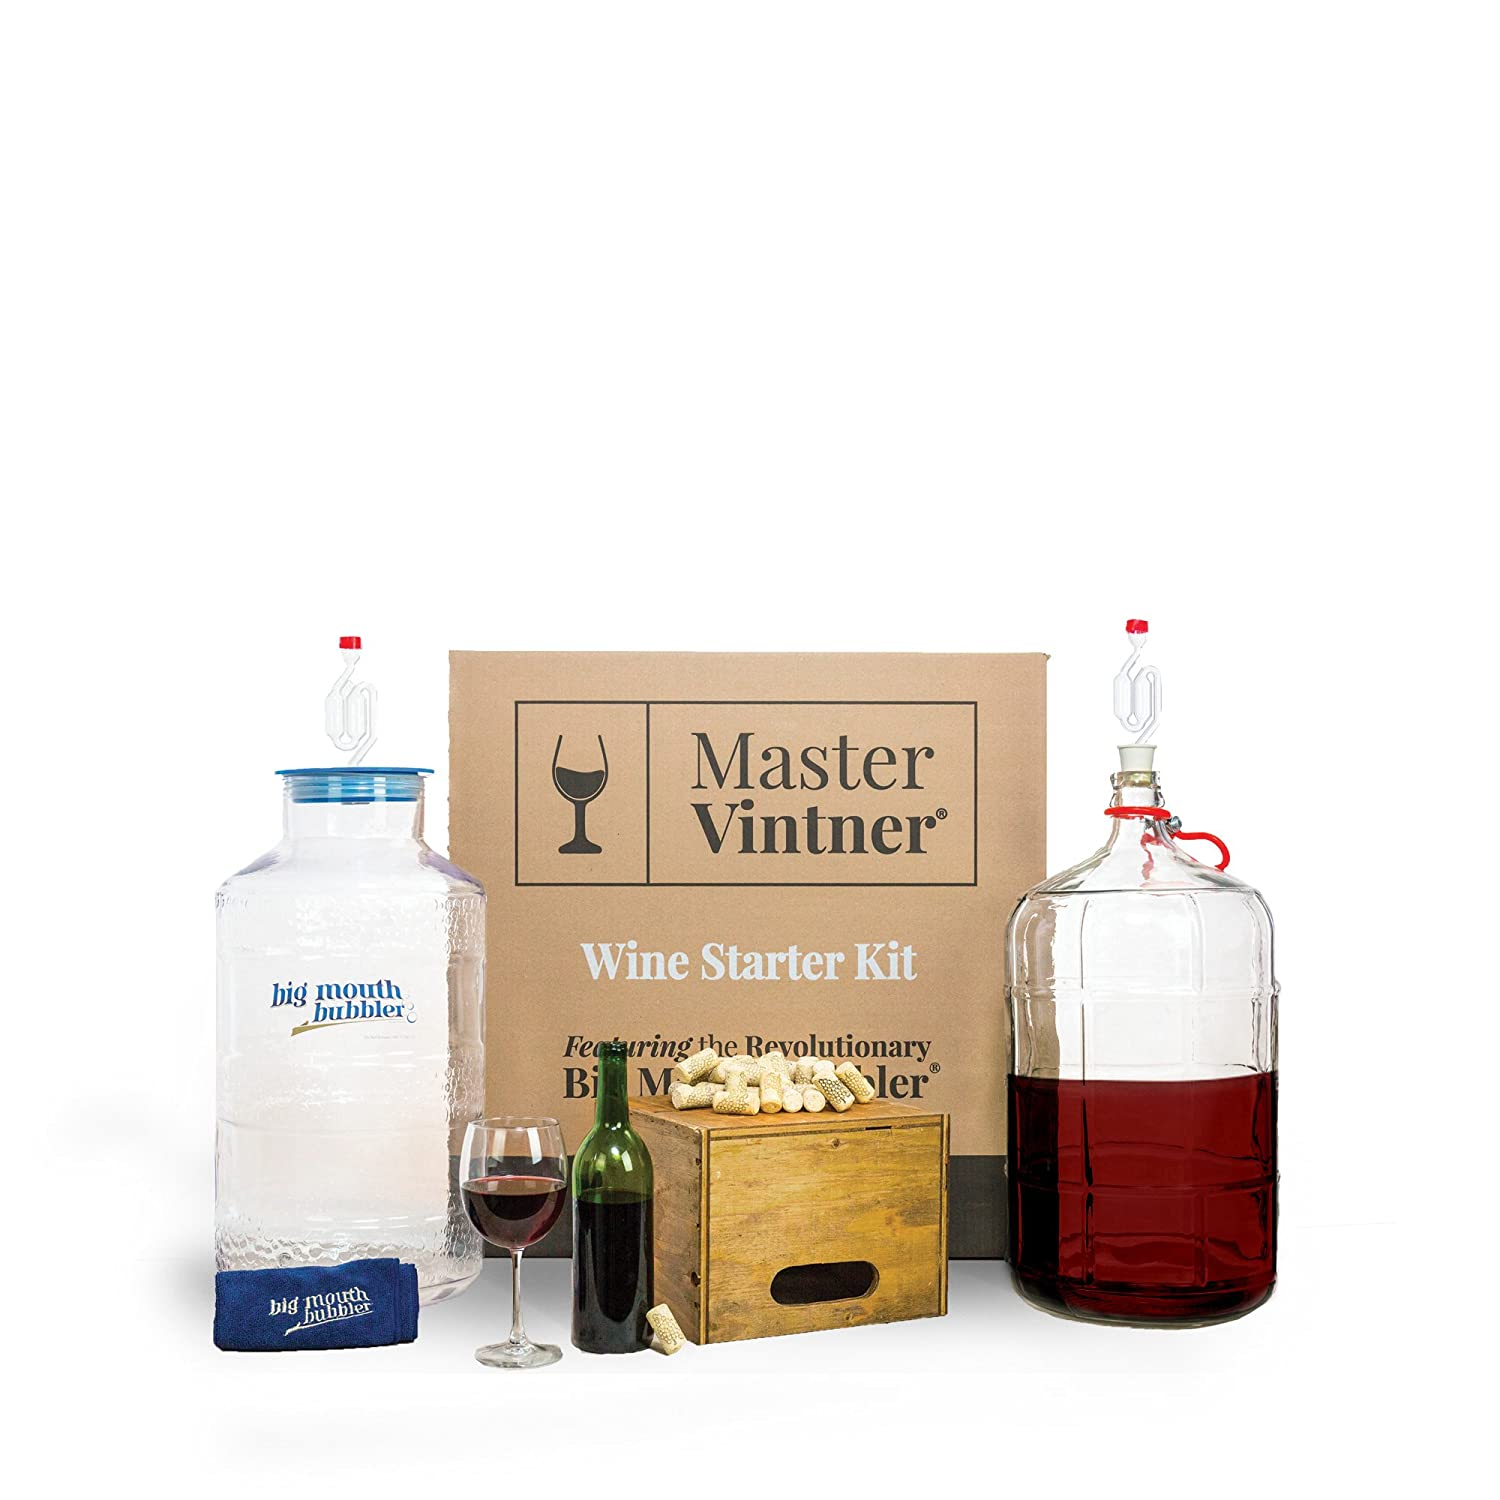 Home wine making and beer brewing recipes quality wine - Amazon Com Master Vintner Home Wine Making Equipment Starter Kit With Plastic Big Mouth Bubbler And Glass Carboy Fermentors For 6 Gallon Wine Recipe Kits